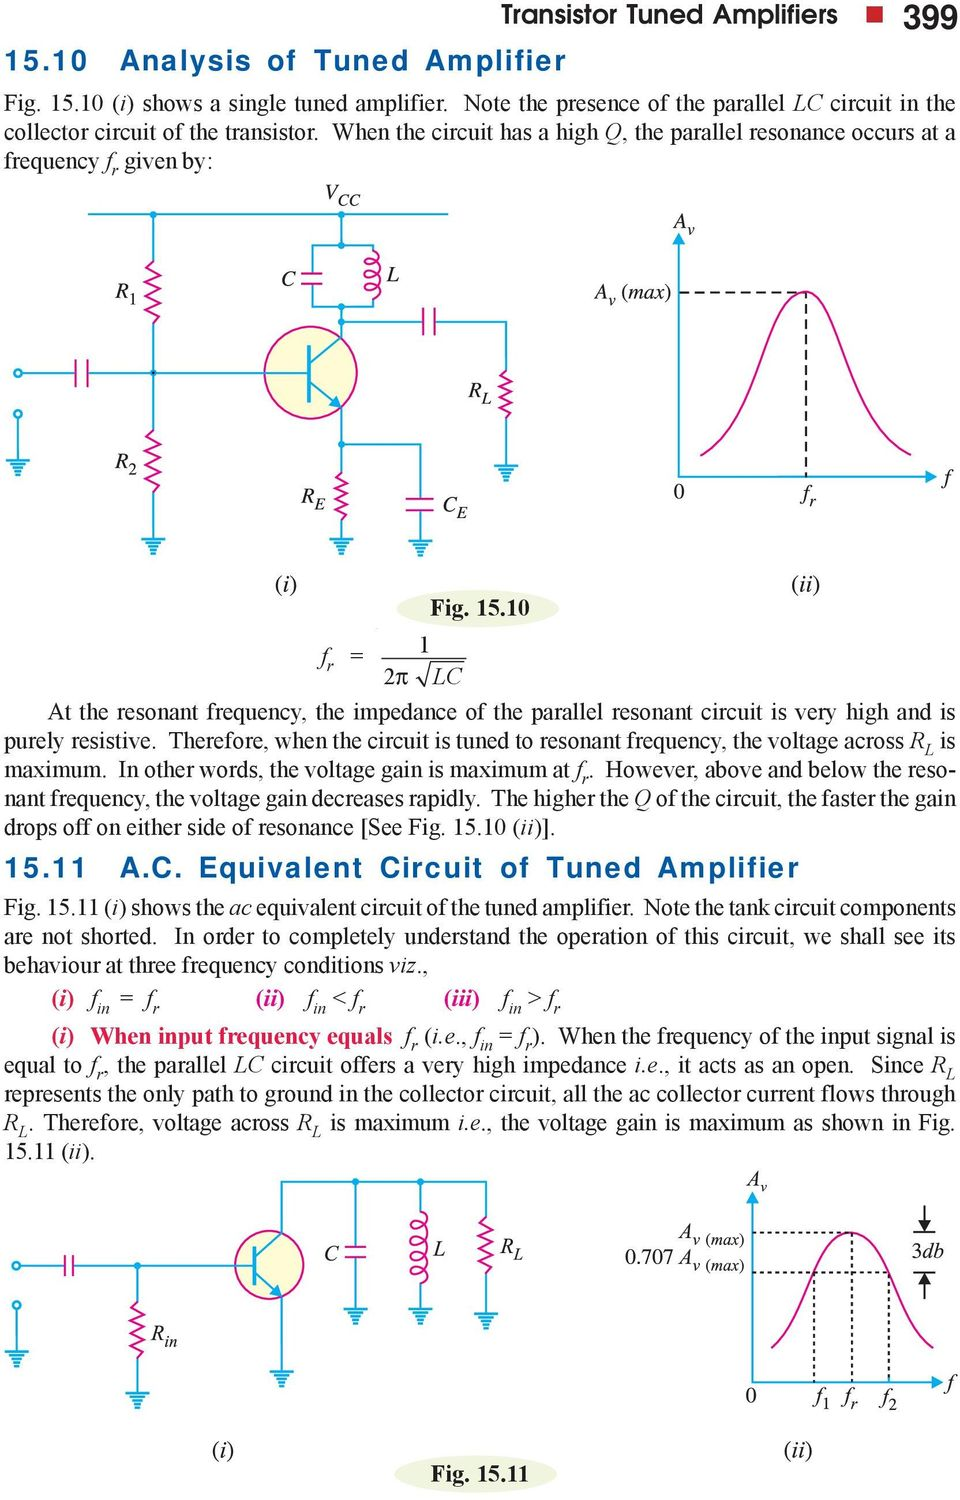 Transistor Tuned Amplifiers Pdf Basic Principles Of The Lc Resonance Circuit 0 F R C At Resonant Frequency Impedance Parallel